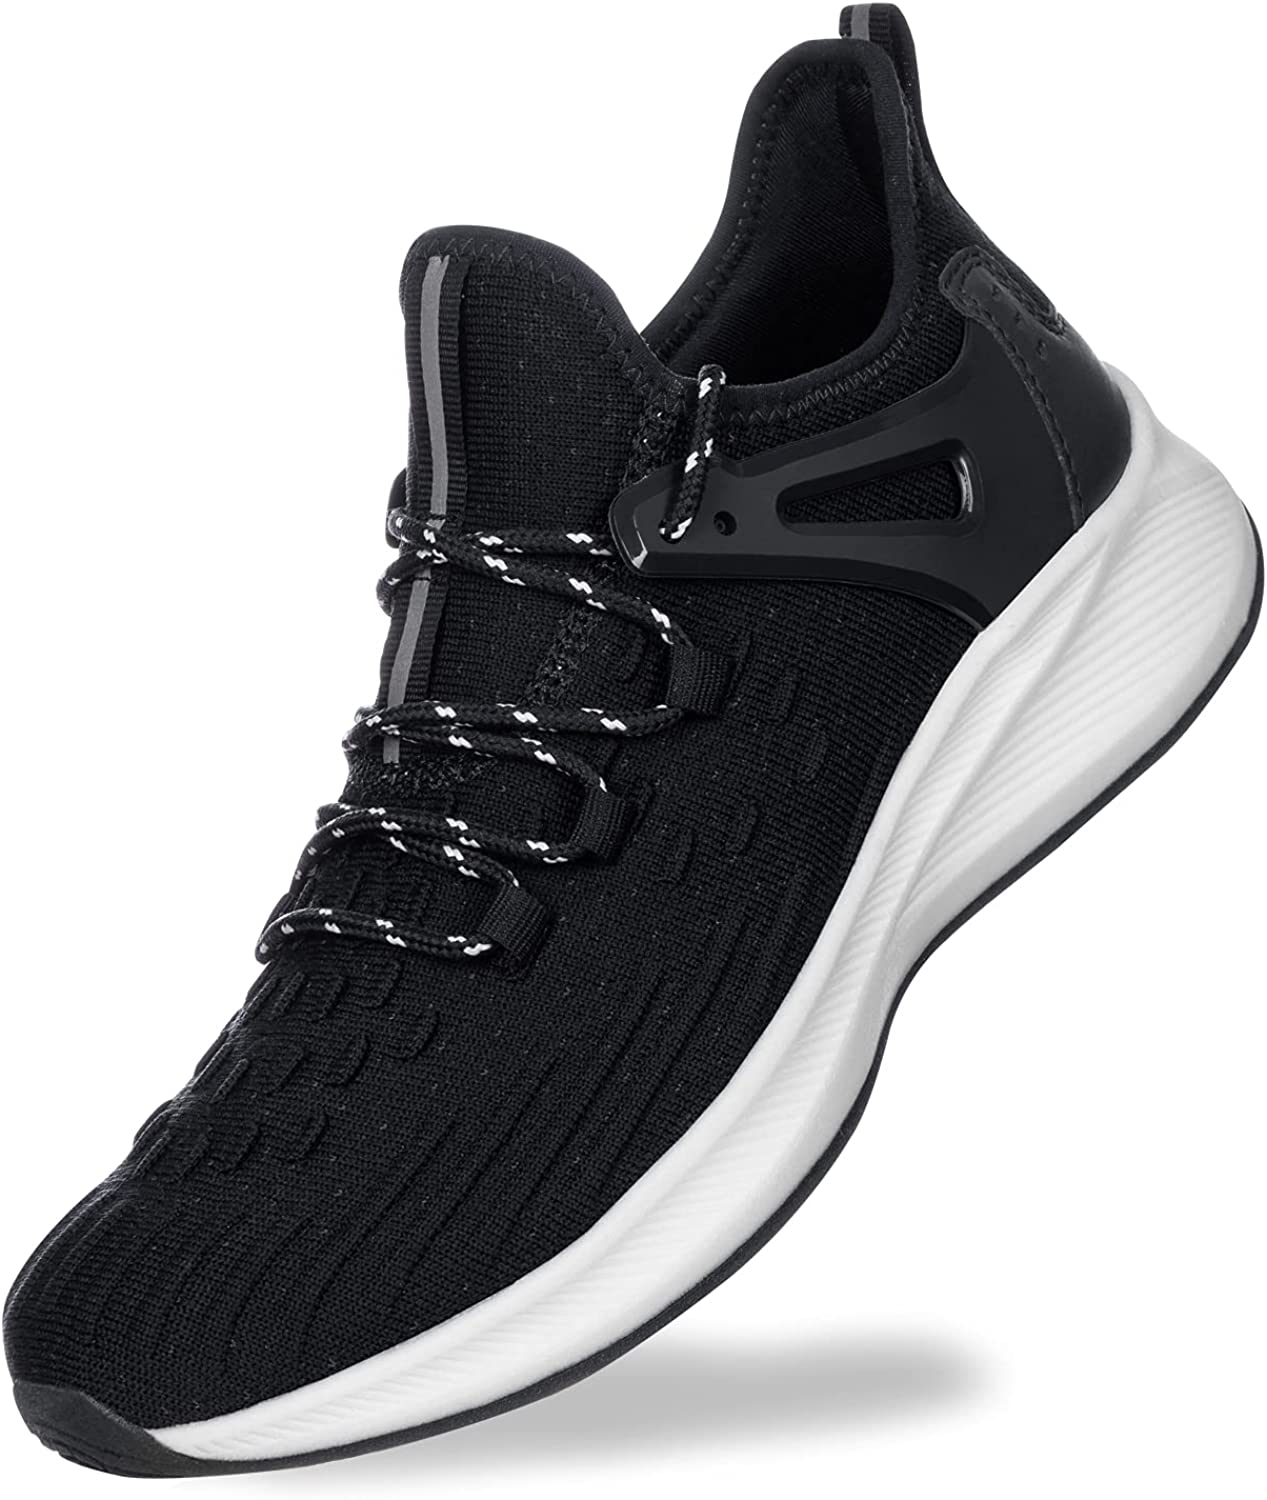 Akk Mens Walking Athletic Shoes - Comfortable Running Shoes Slip On Sneakers Breathable for Men Travel Casual Driving Workout Sports